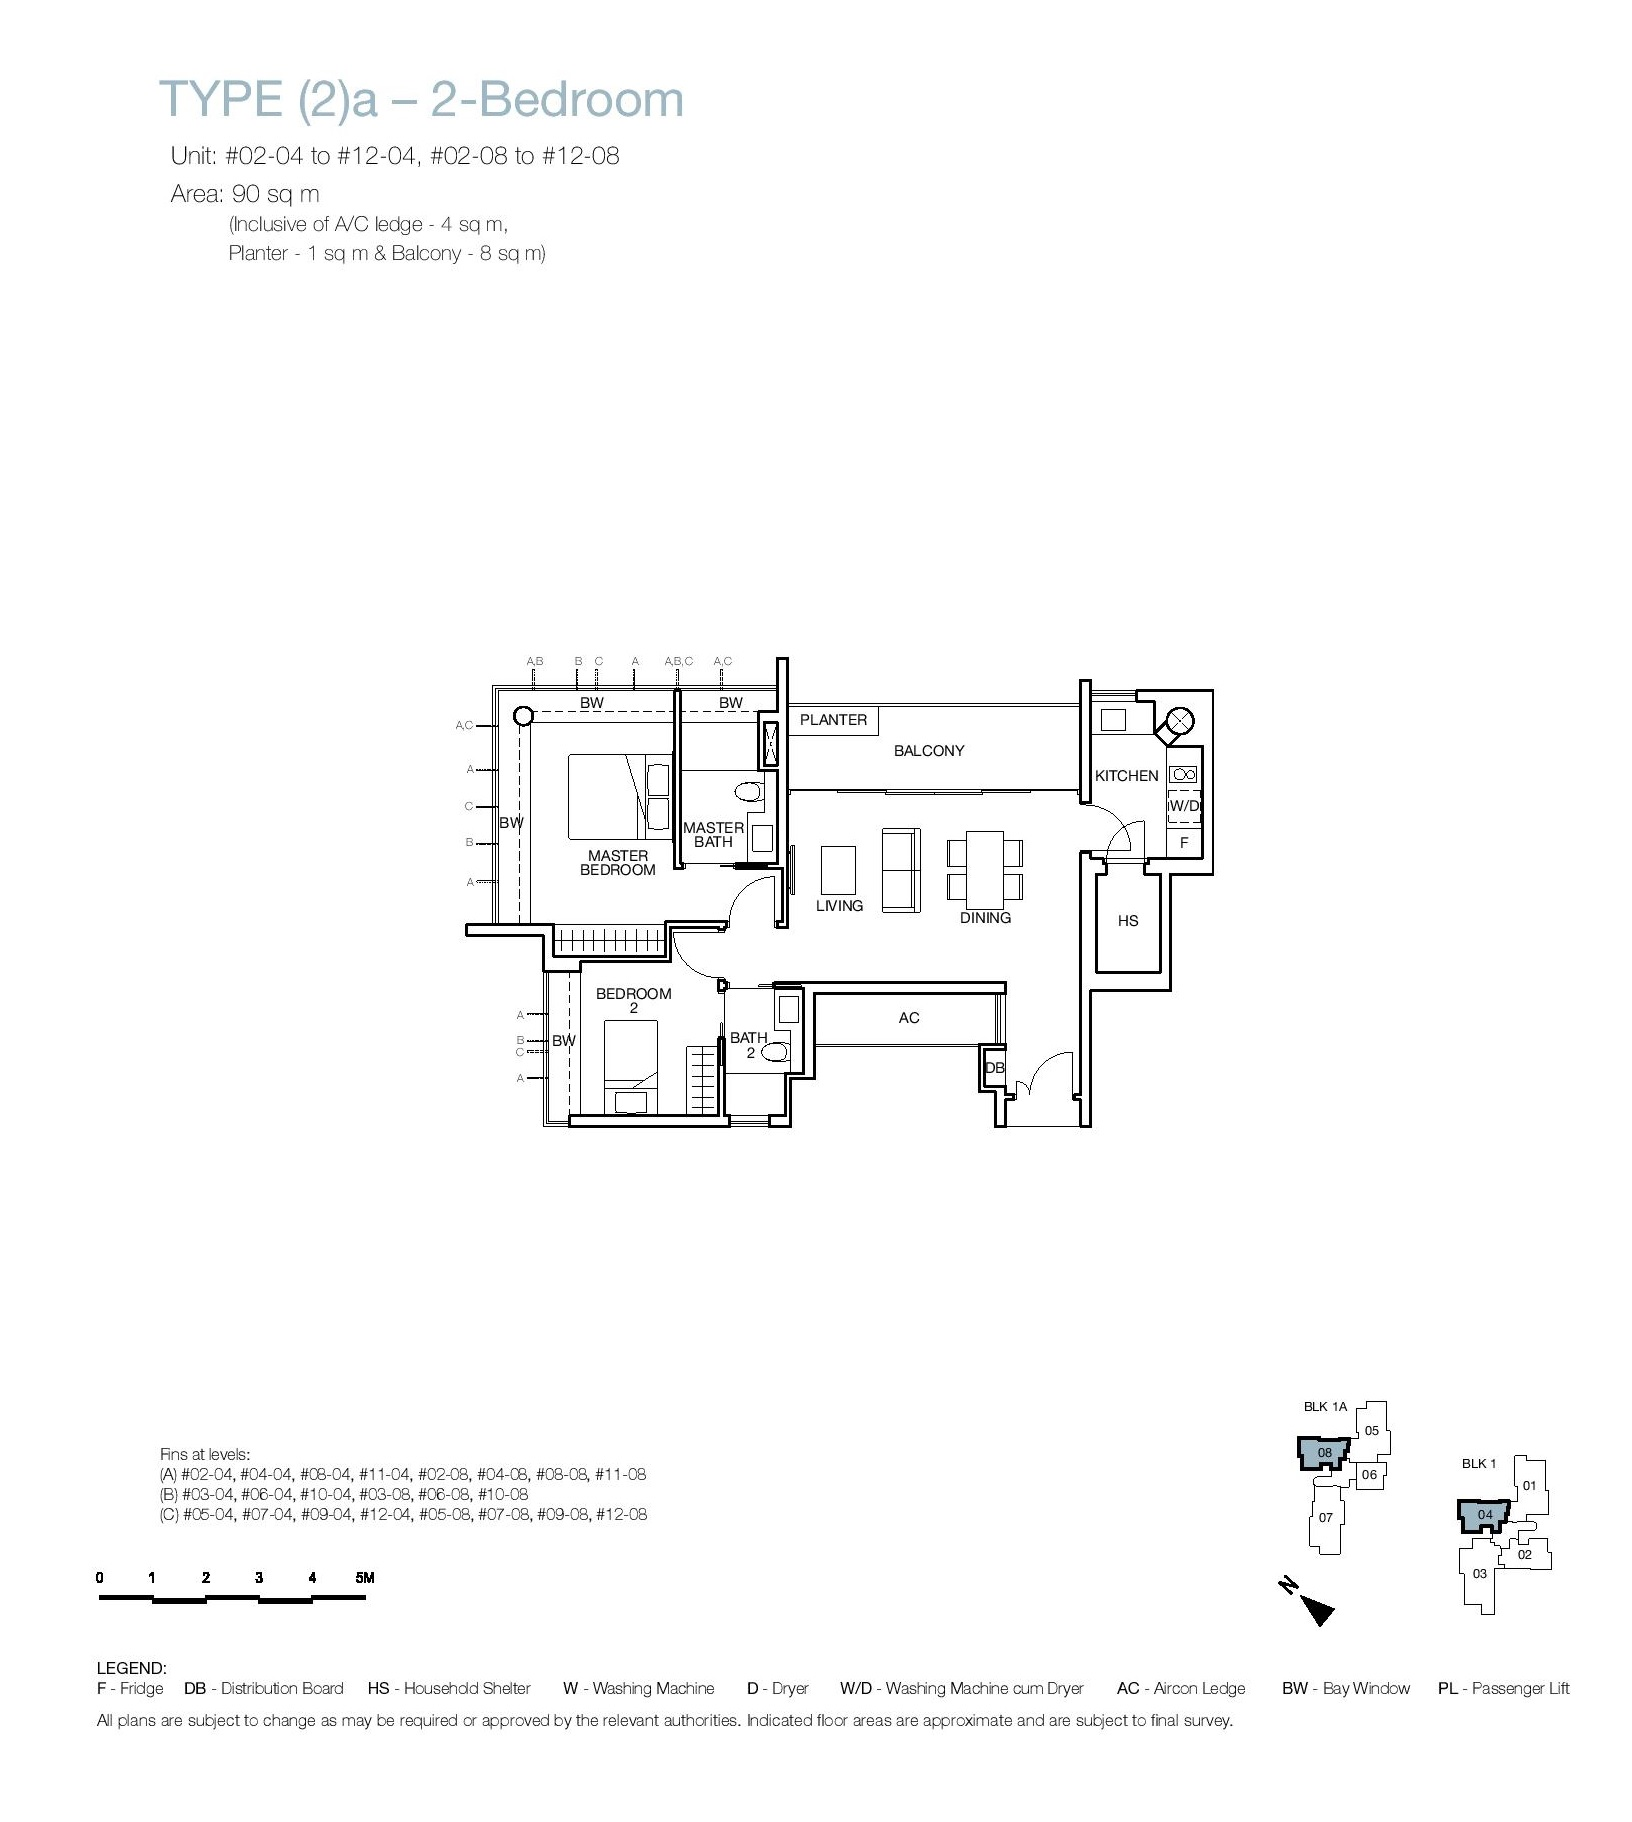 One Balmoral 2 Bedroom Floor Type (2)a Plans